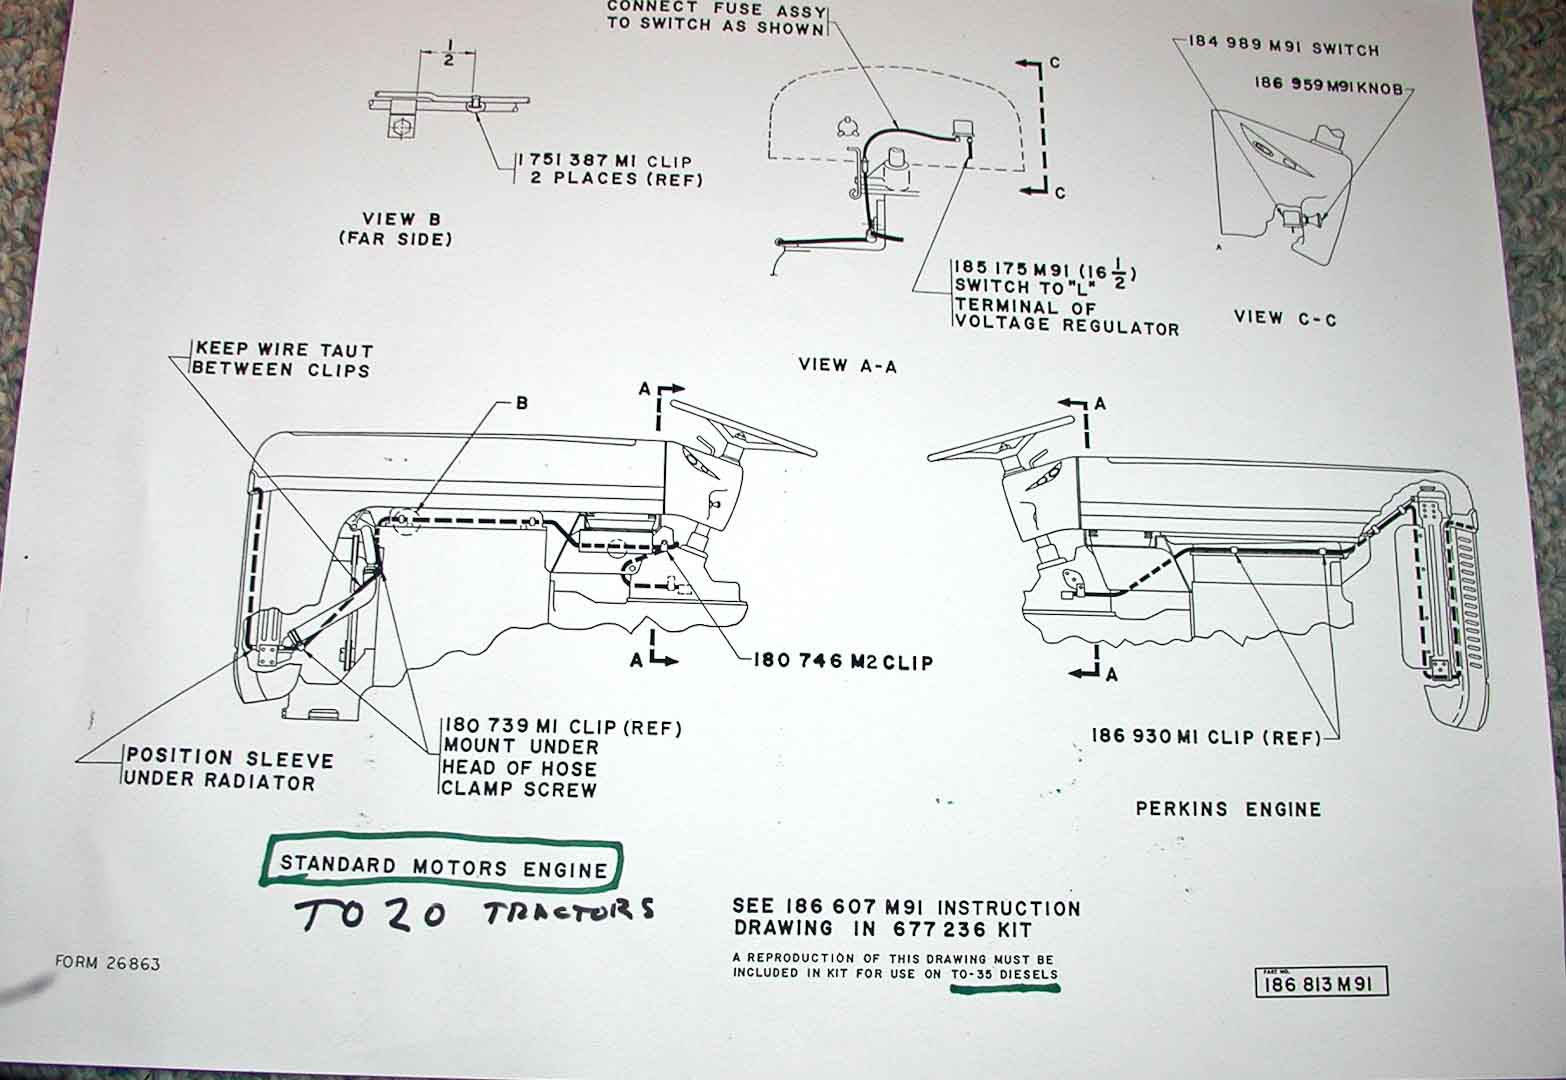 Electrical and Lighting Diagrams – Ferguson Enthusiasts of North on john deere wiring diagram, ferguson tractor distributor, ferguson tractor starter diagram, ferguson 35 tractor schematics, 8n ford tractor hydraulics diagram, ferguson tractor bumper, ferguson tractor coil, ferguson tractor exhaust, massey ferguson 235 steering diagram, ferguson to 20 wiring-diagram, perkins diesel engine wiring diagram, massey ferguson 135 parts diagram, ferguson to30 wiring diagram, massey ferguson 135 tractor diagram, massey ferguson wiring diagram, massey ferguson 165 electrical diagram, massey ferguson ignition switch diagram, ferguson tractor tools, ferguson tractor generator, massey ferguson 231 parts diagram,